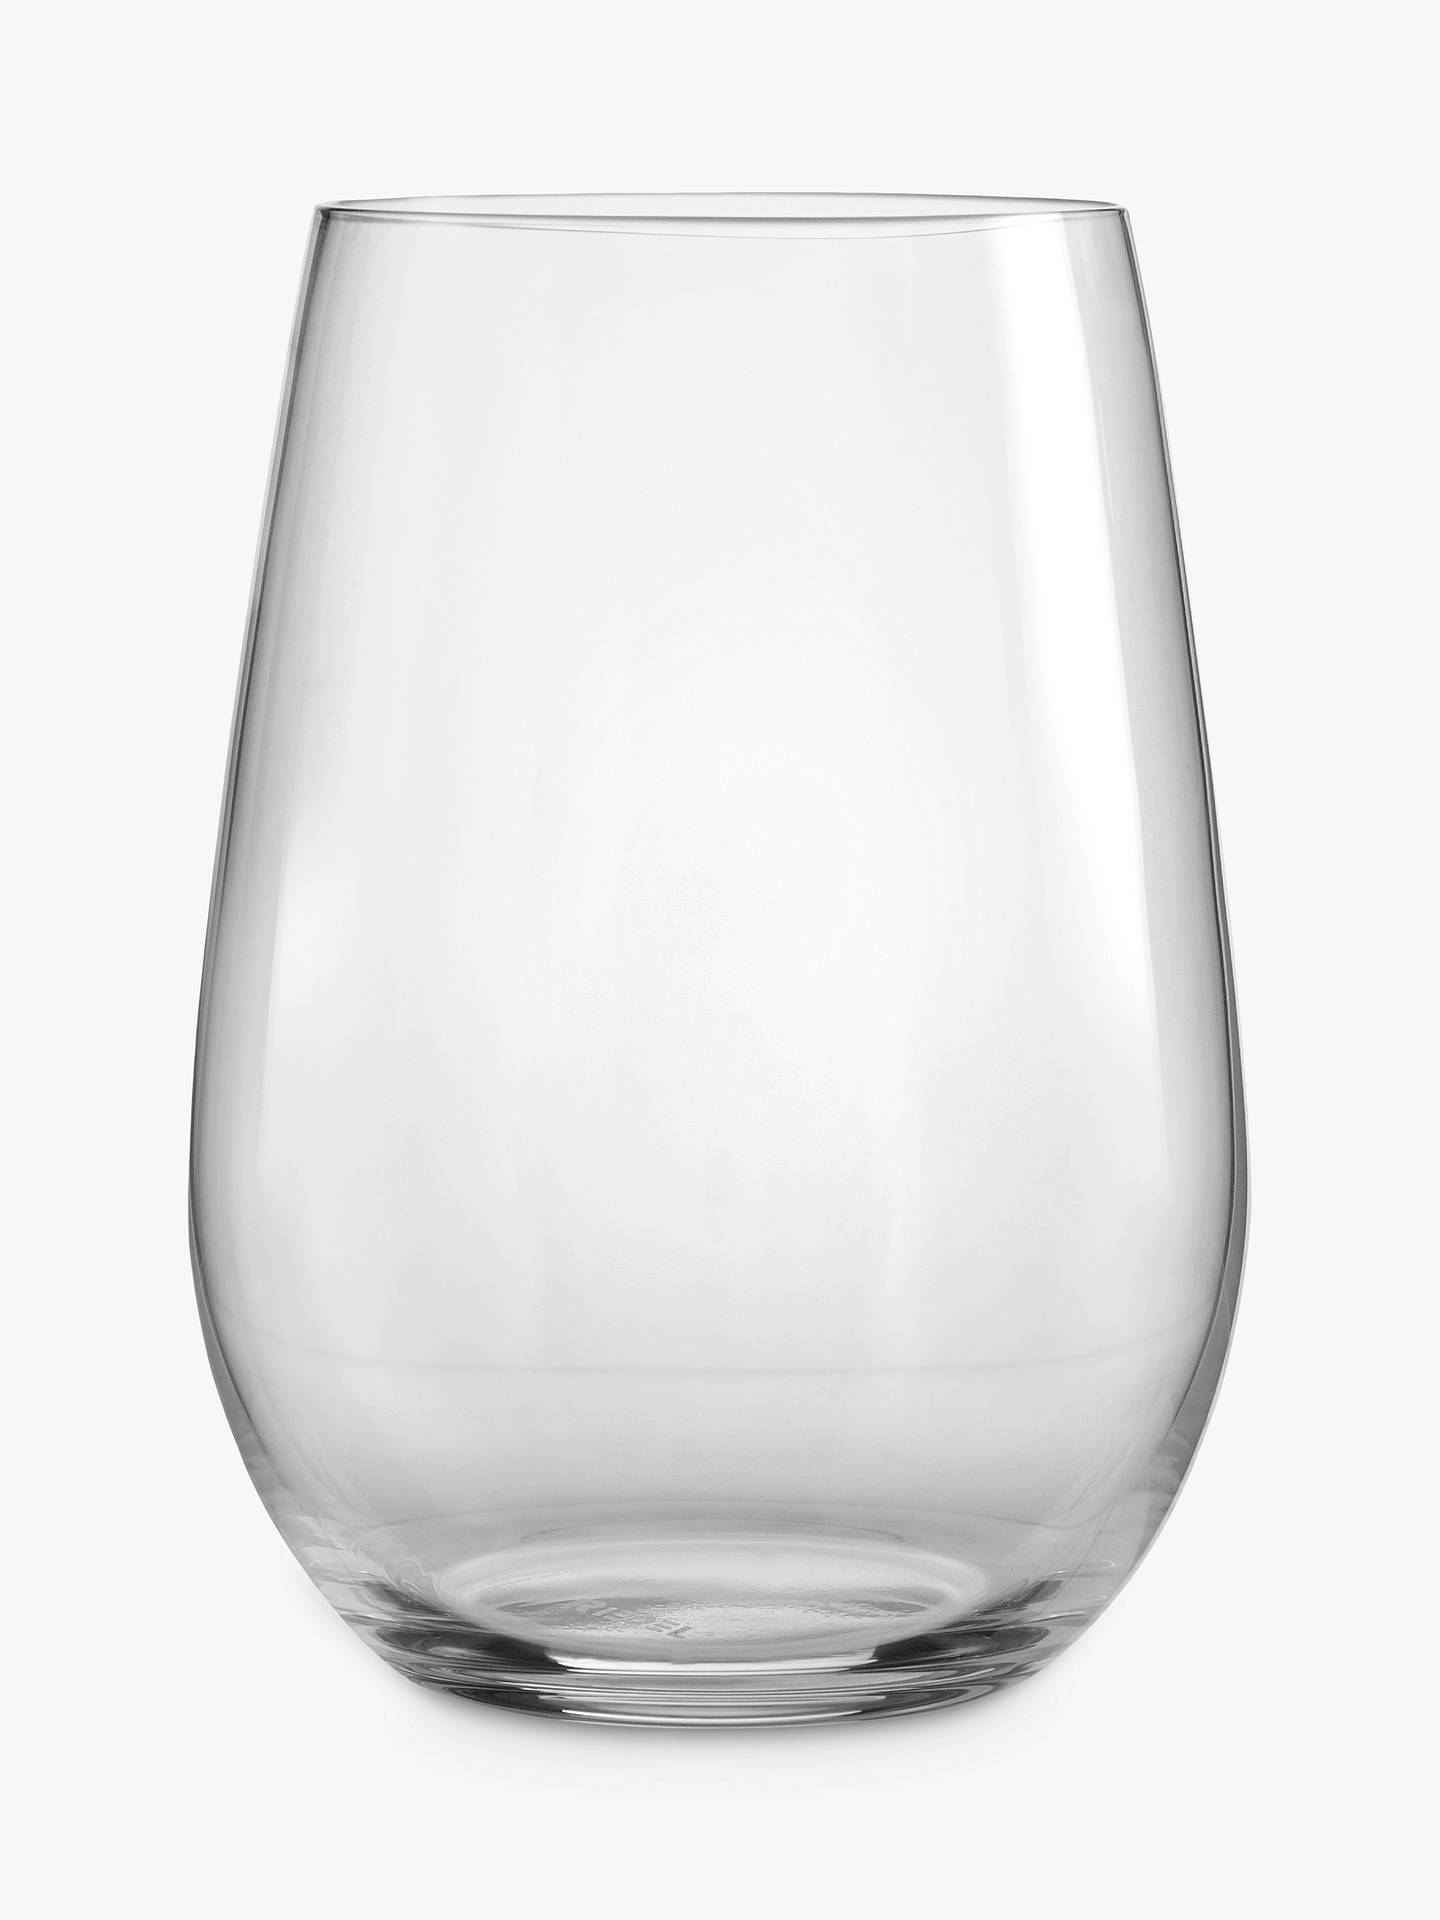 29be7bbfb05 Riedel 'O' Riesling/ Sauvignon Stemless Glass, Set of 2